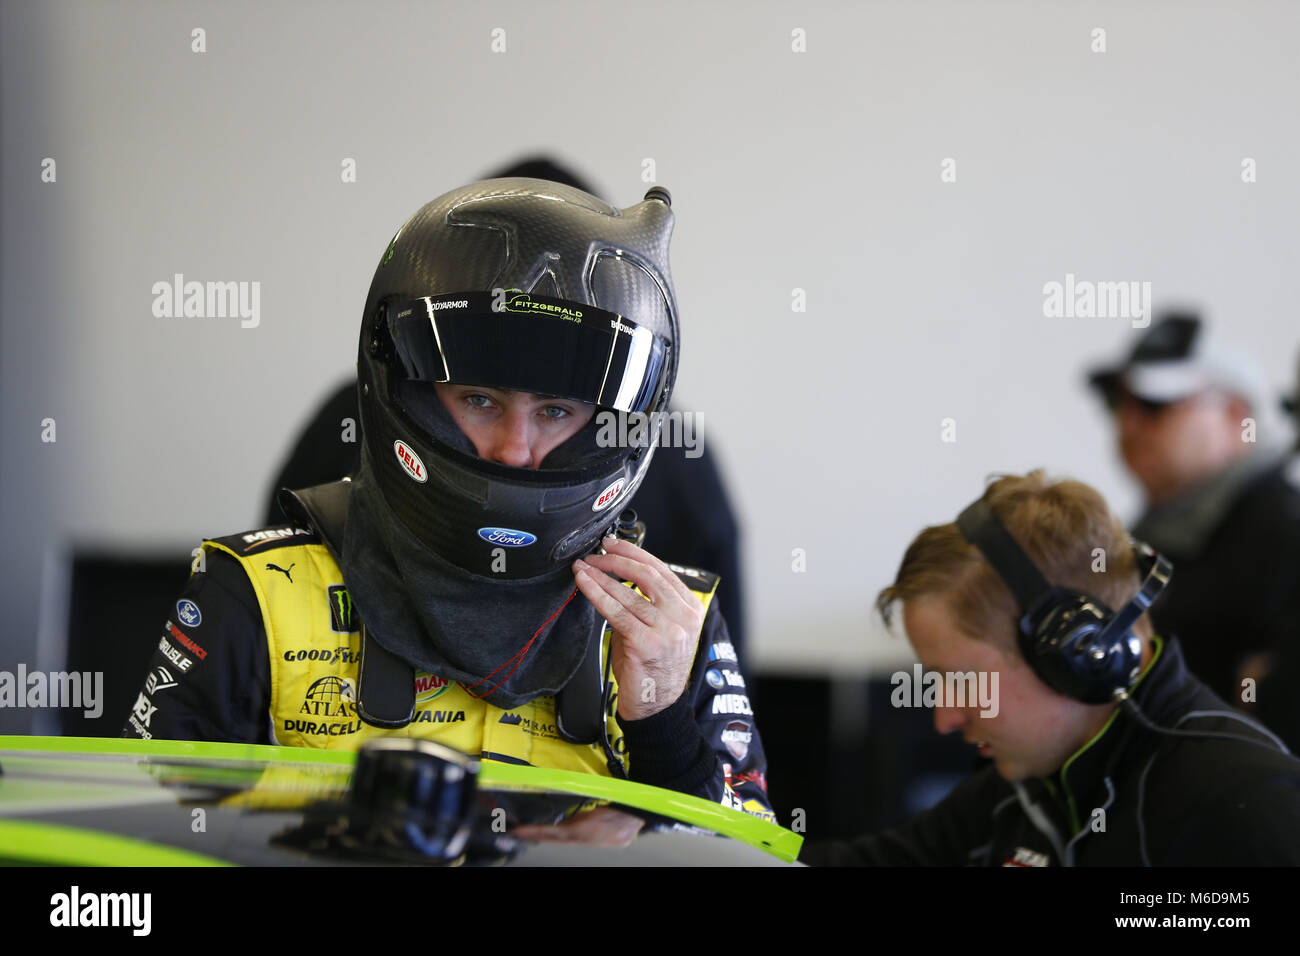 Las Vegas, Nevada, USA. 2nd Mar, 2018. March 02, 2018 - Las Vegas, Nevada, USA: Ryan Blaney (22) hangs out in the - Stock Image